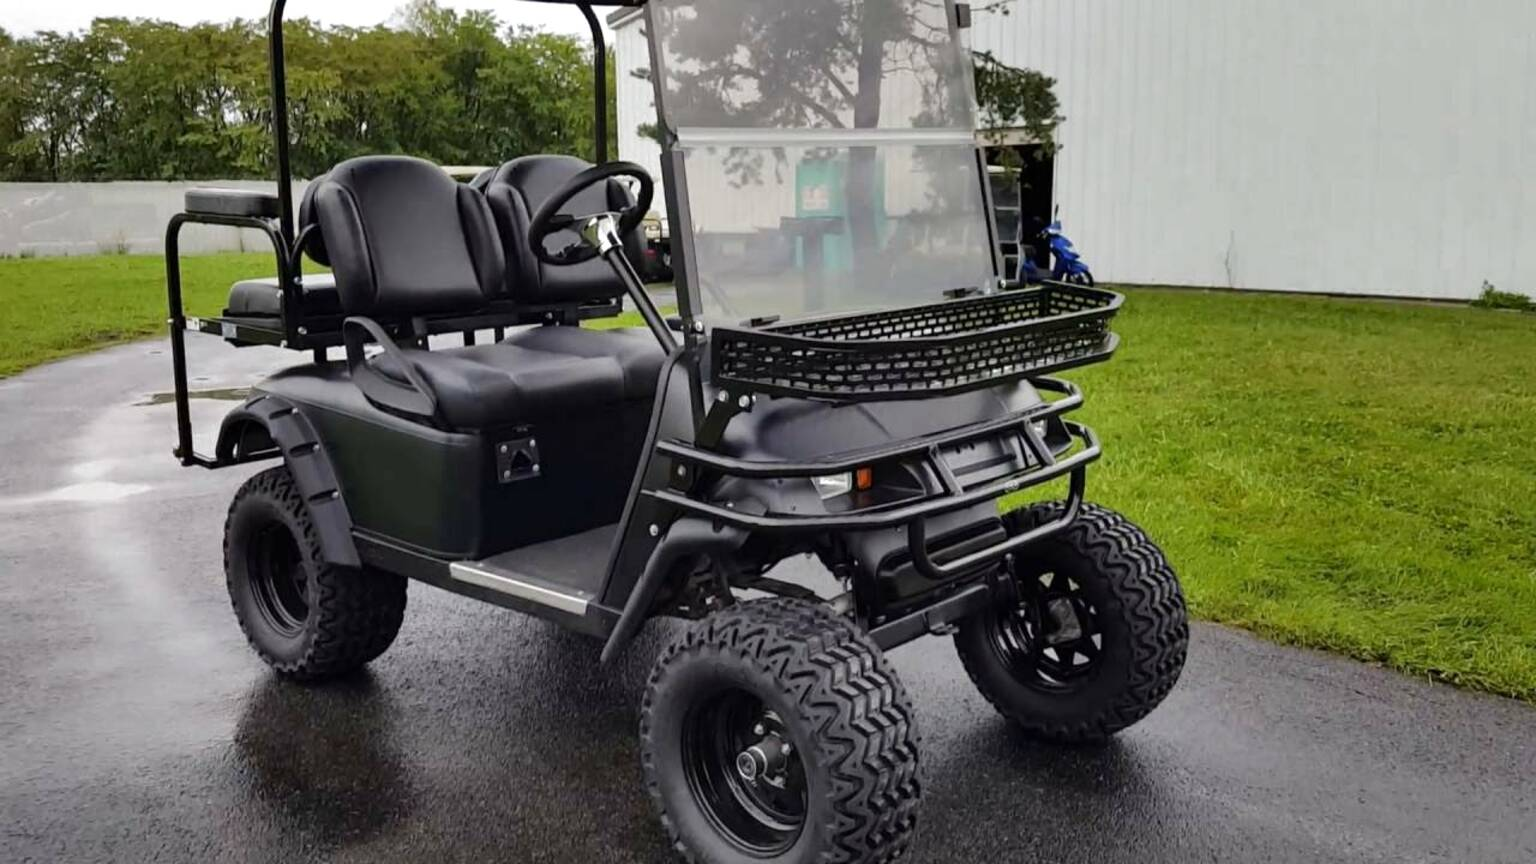 48 volt golf cart for sale